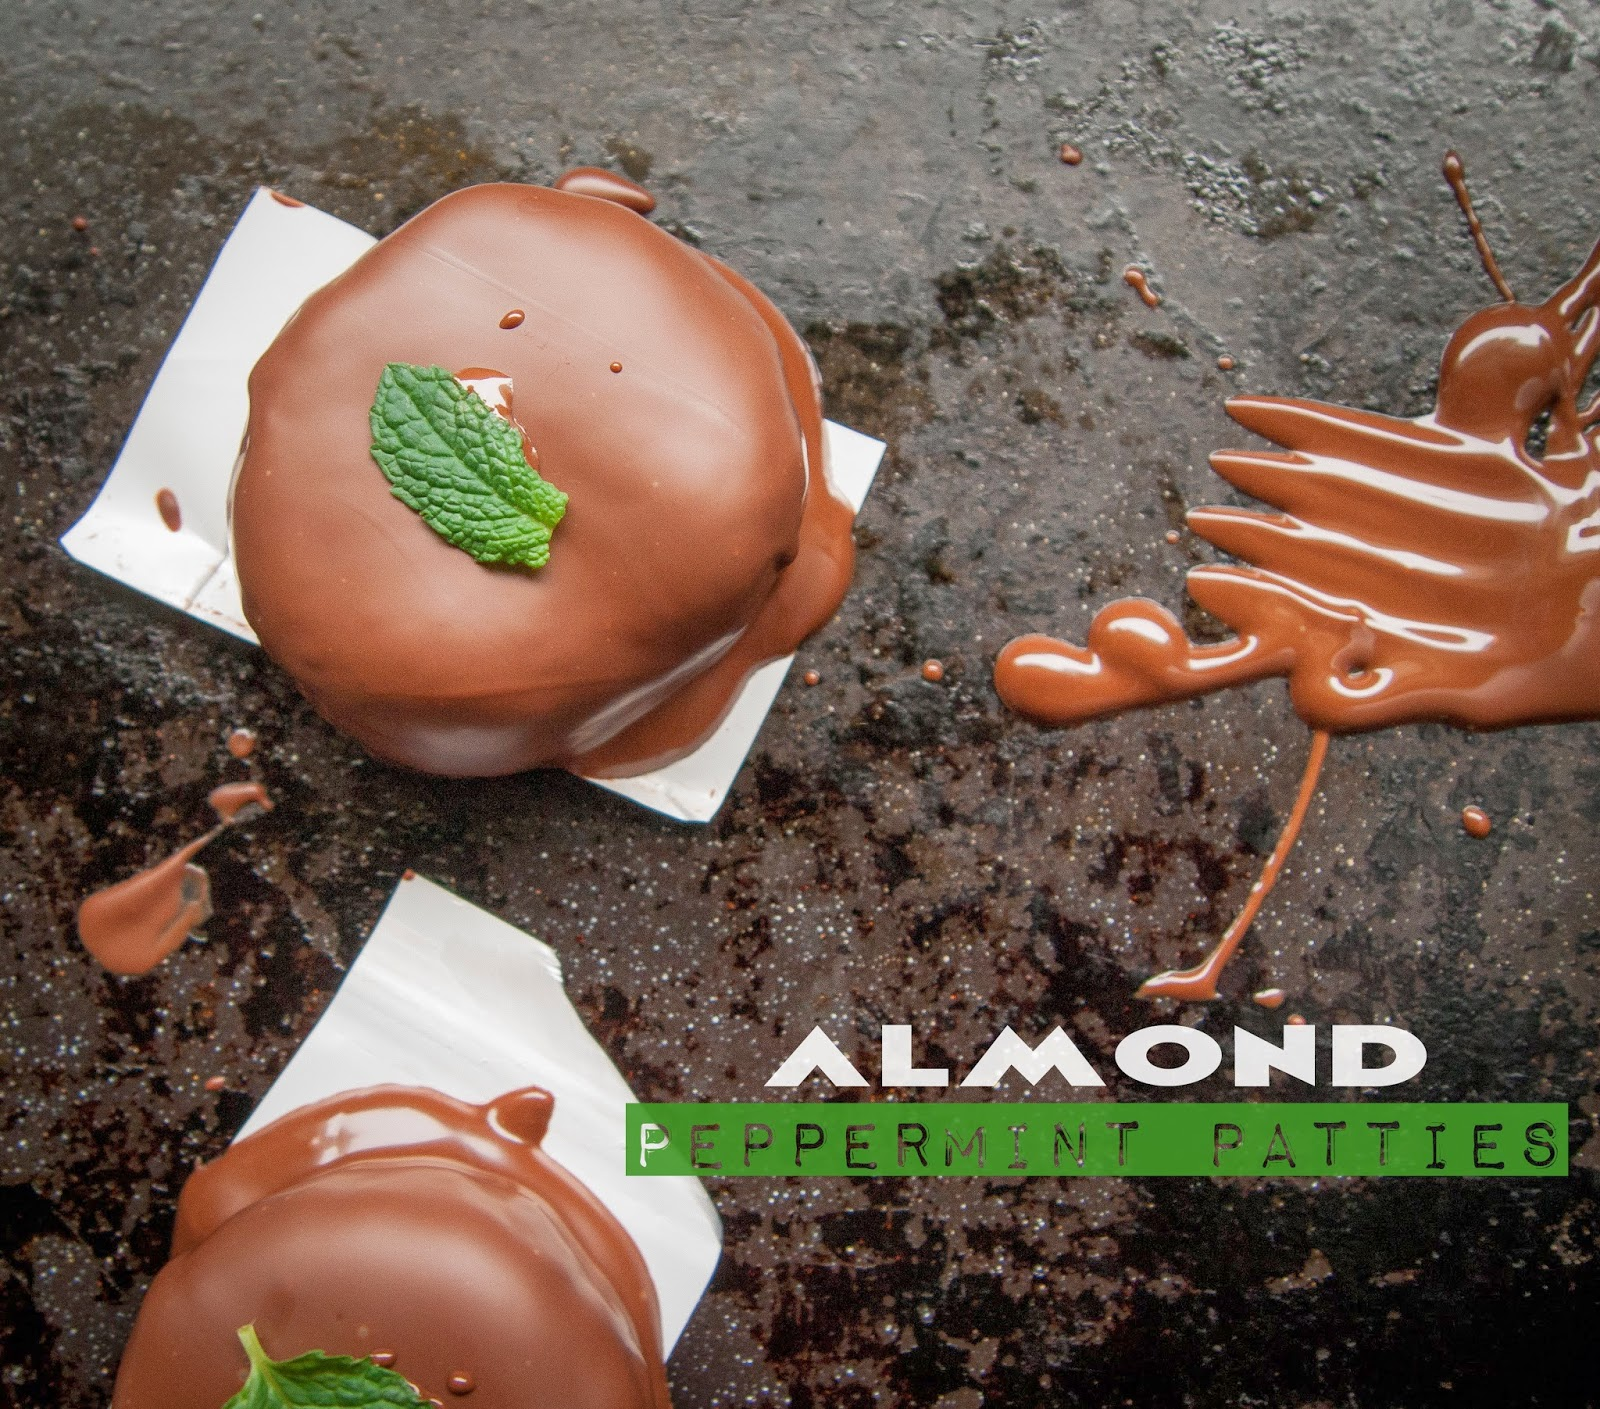 Chocolate Coconut Patties Dunmore Candy Kitchen: Vegan In Melbourne: Almond Peppermint Patties